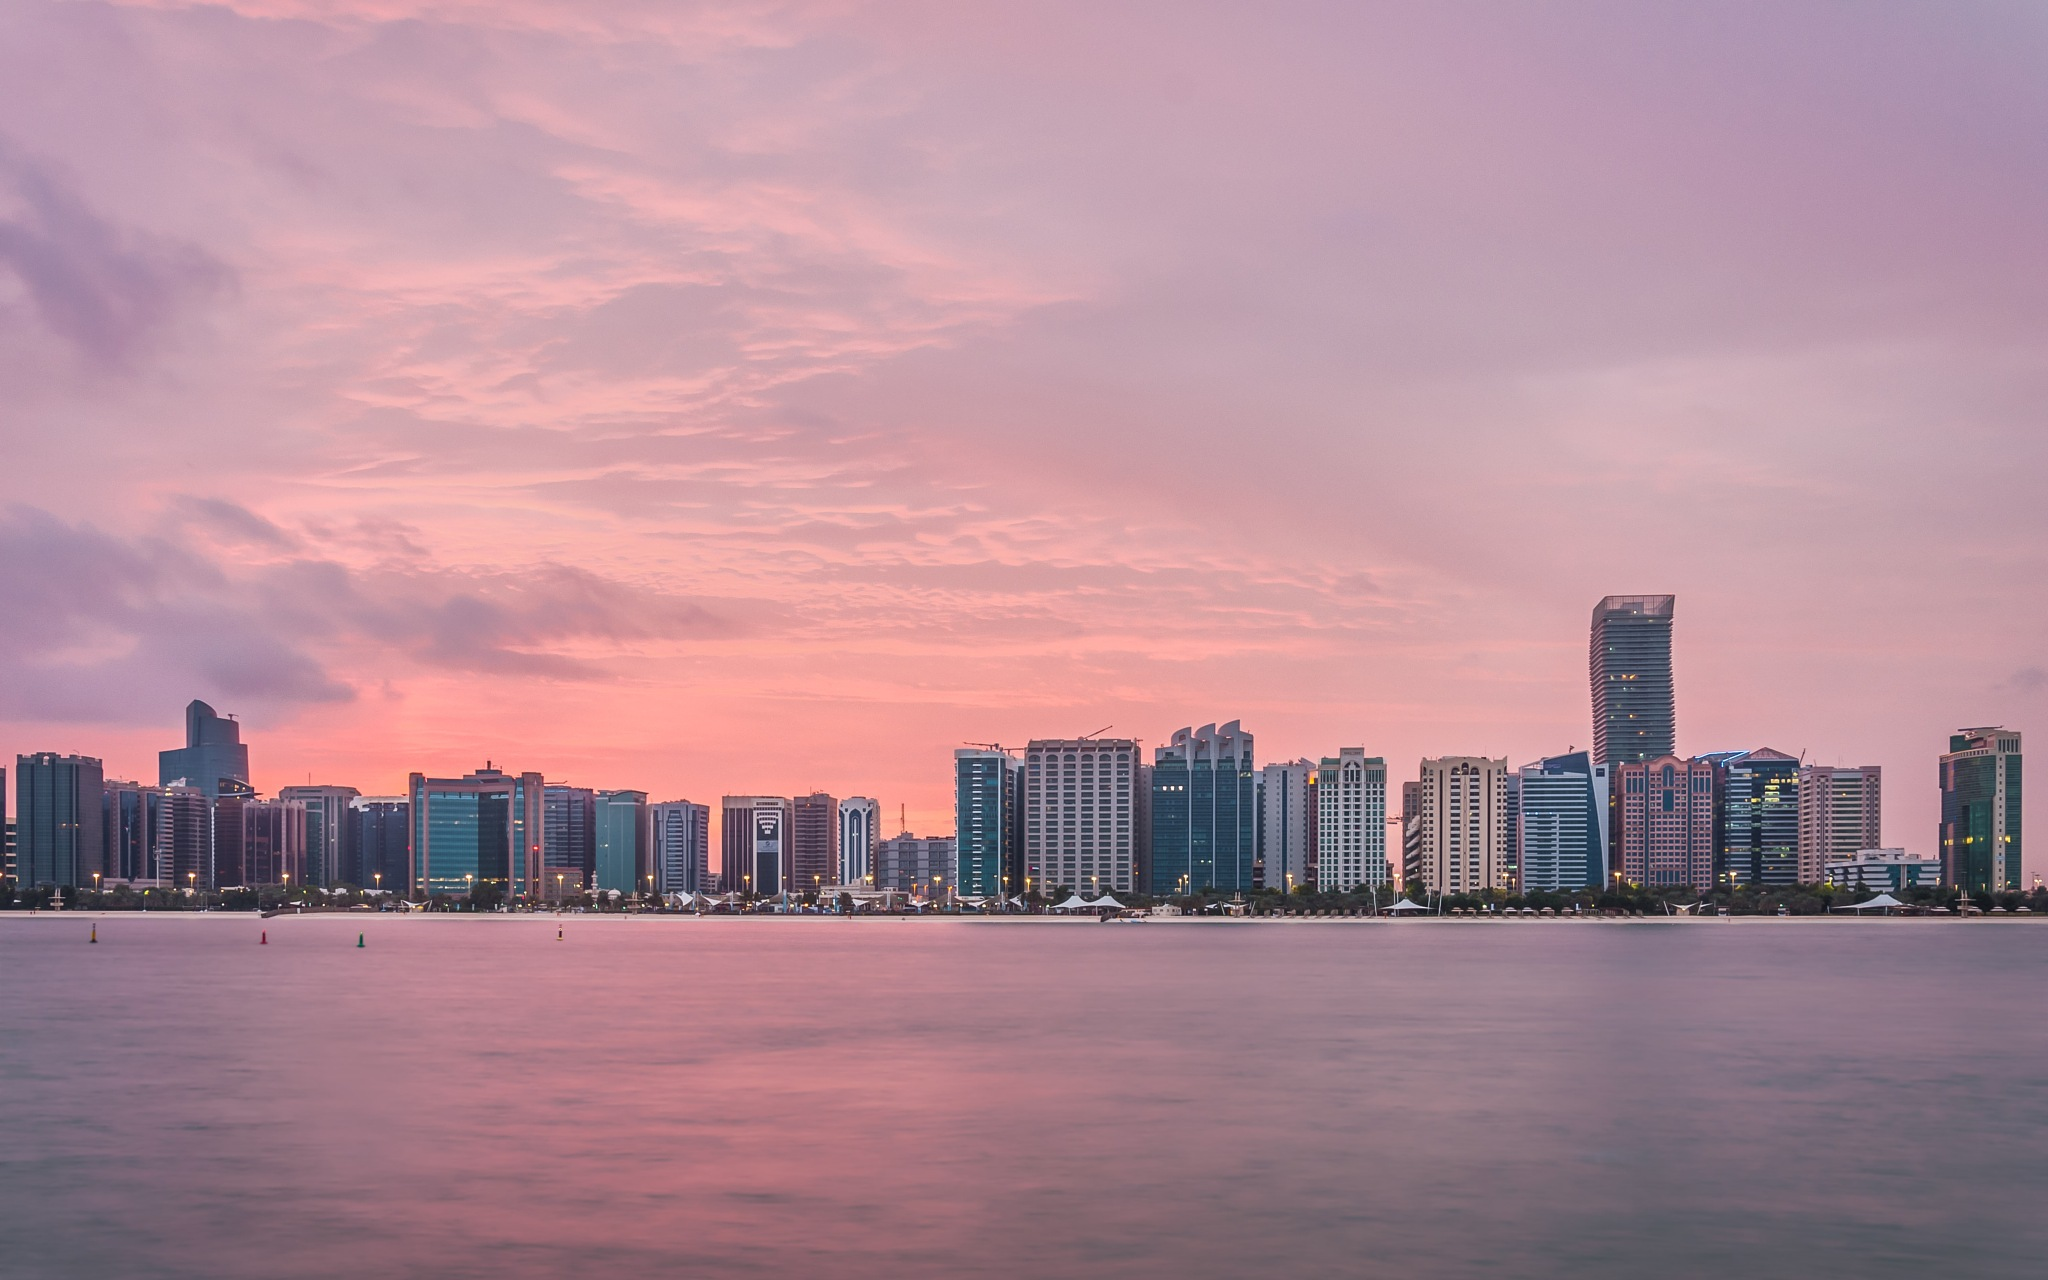 Sunrise in Abu Dhabi by kleptography